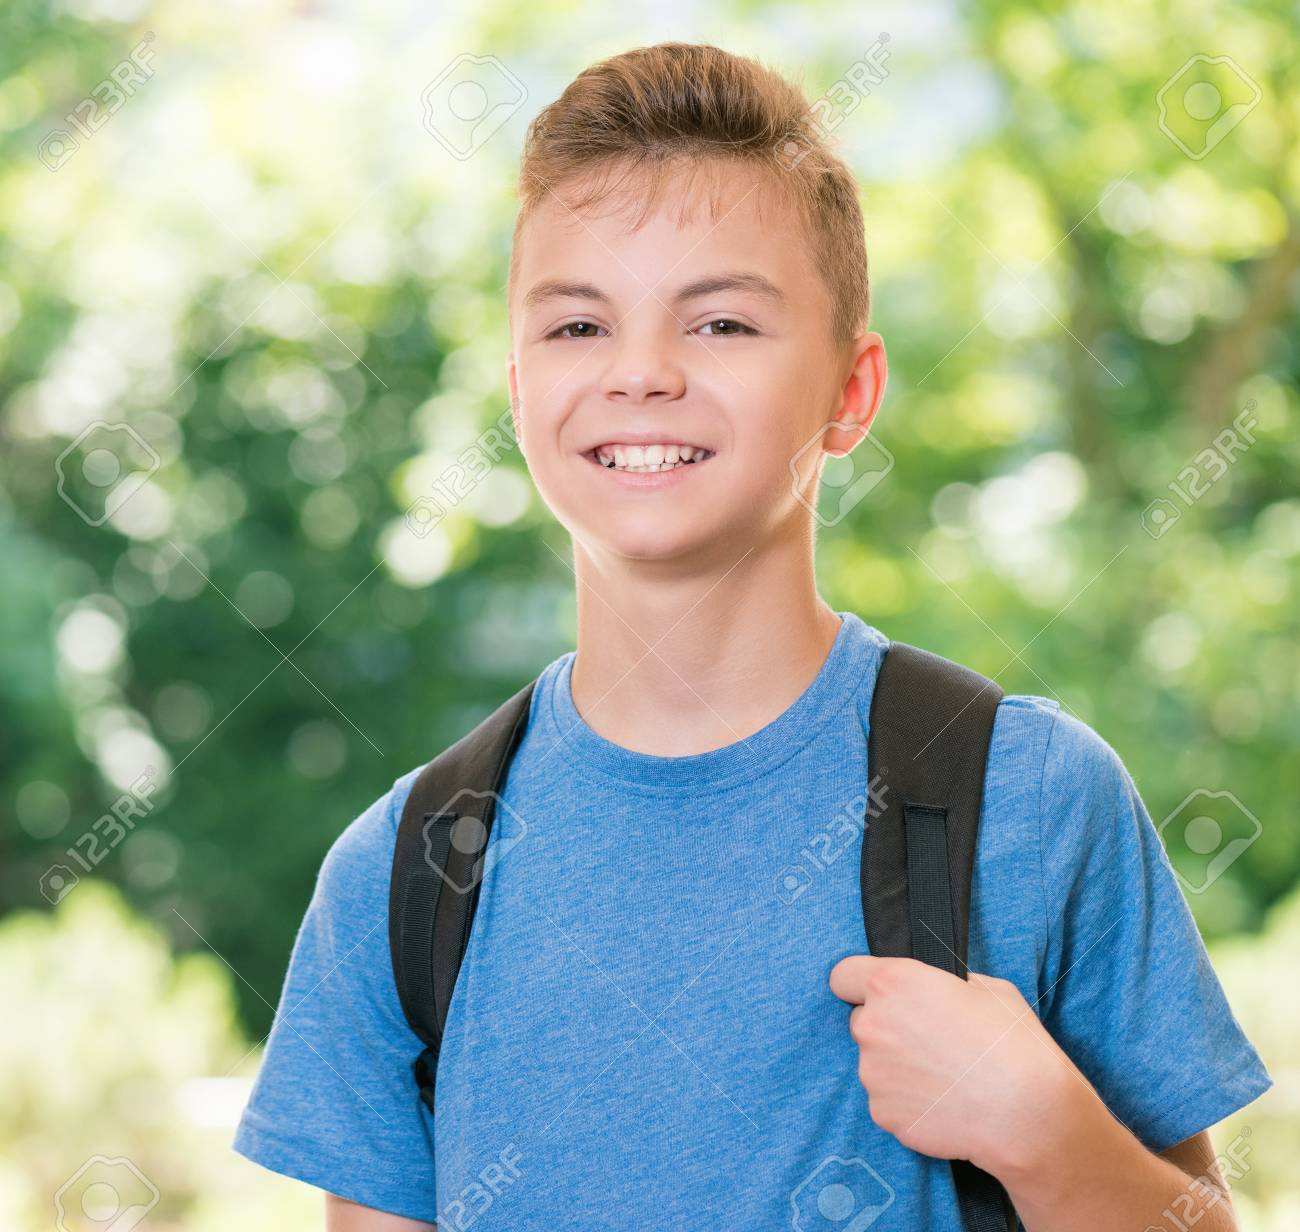 Cute Teen Boy 12 14 Year Old With Schoolbag Posing Outdoors Stock